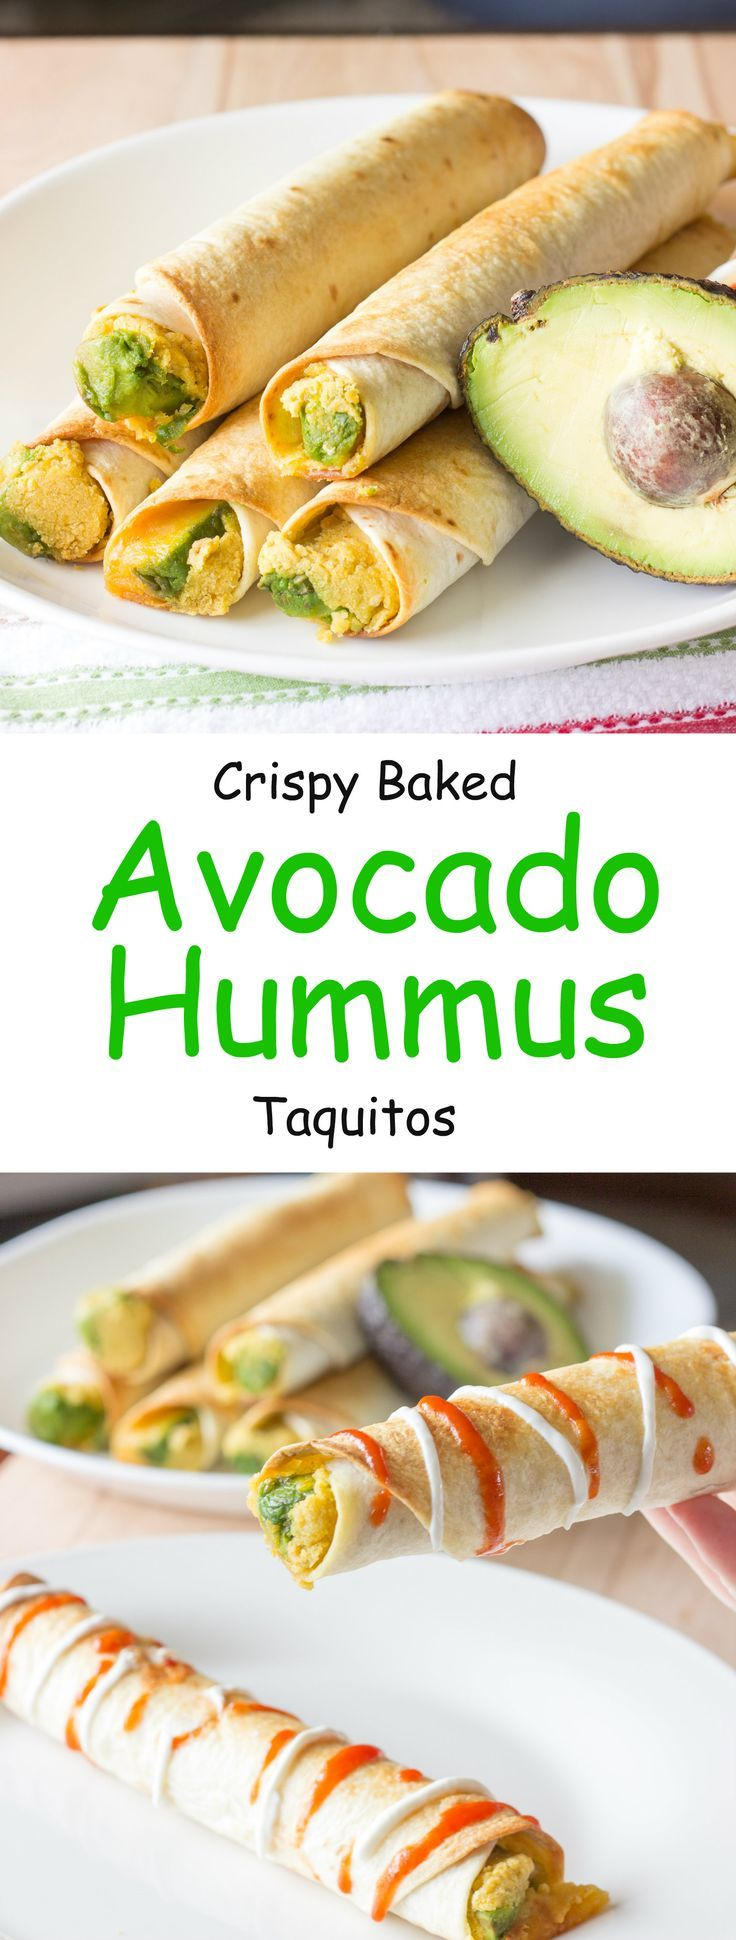 Avocado hummus taquitos are tortillas with hummus, sliced avocado, and shredded cheese rolled into small tubes; and baked until crunchy. #healthy #recipes #vegetarian